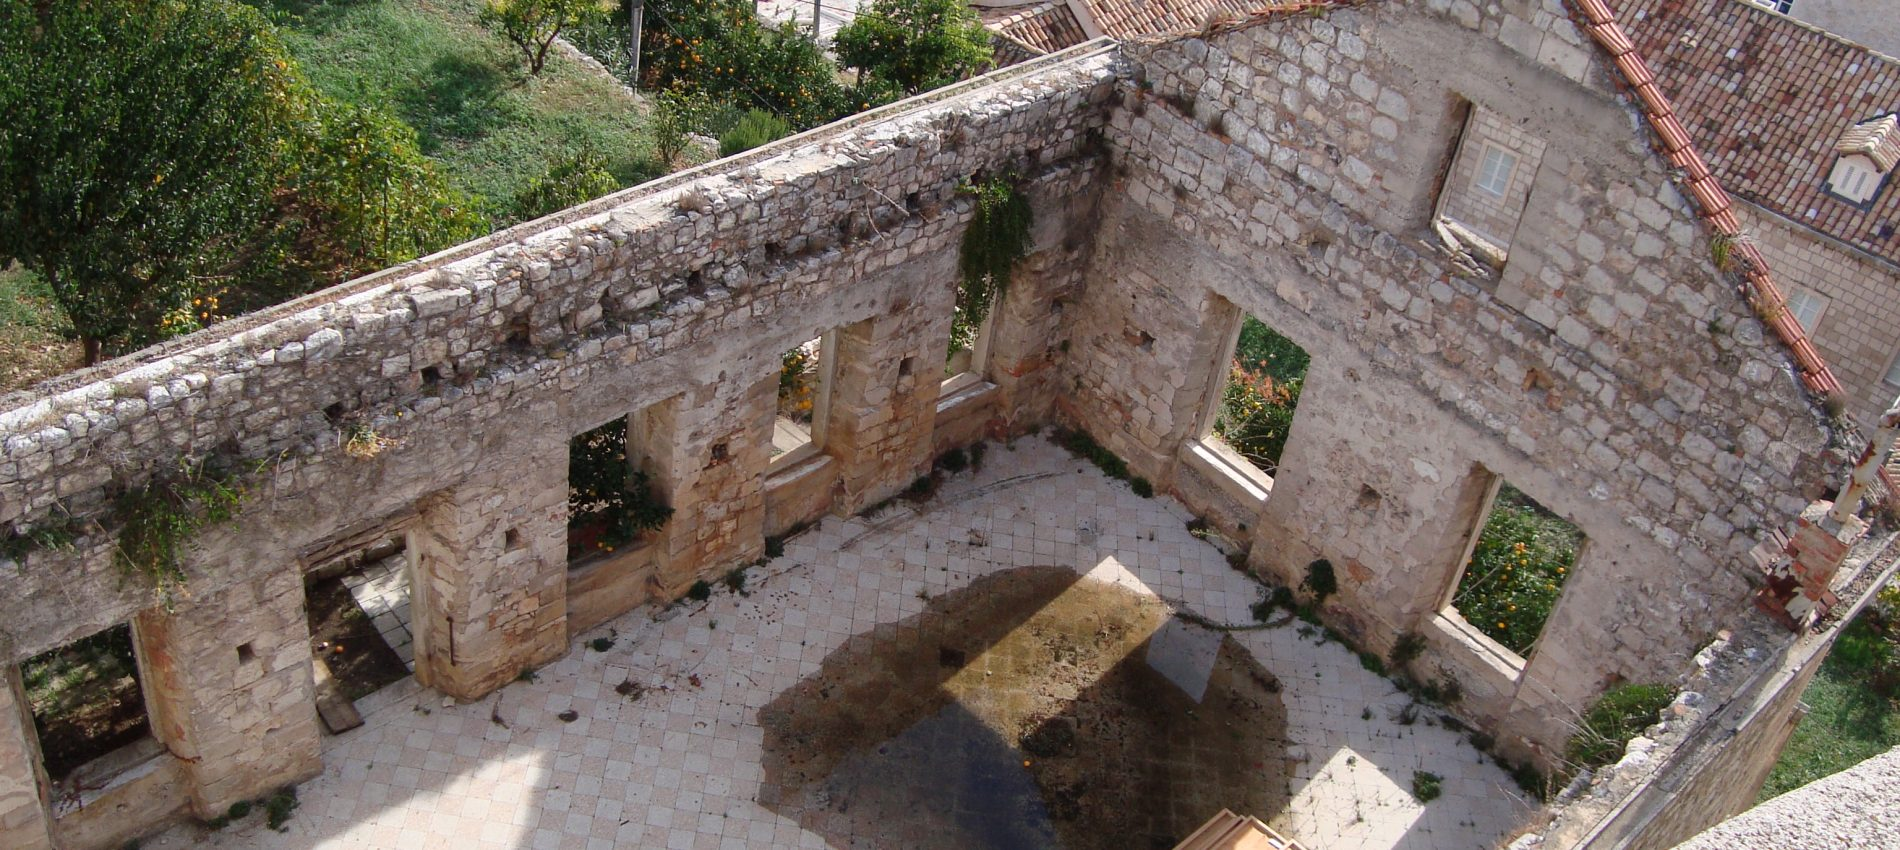 Remnant of war in Dubrovnik